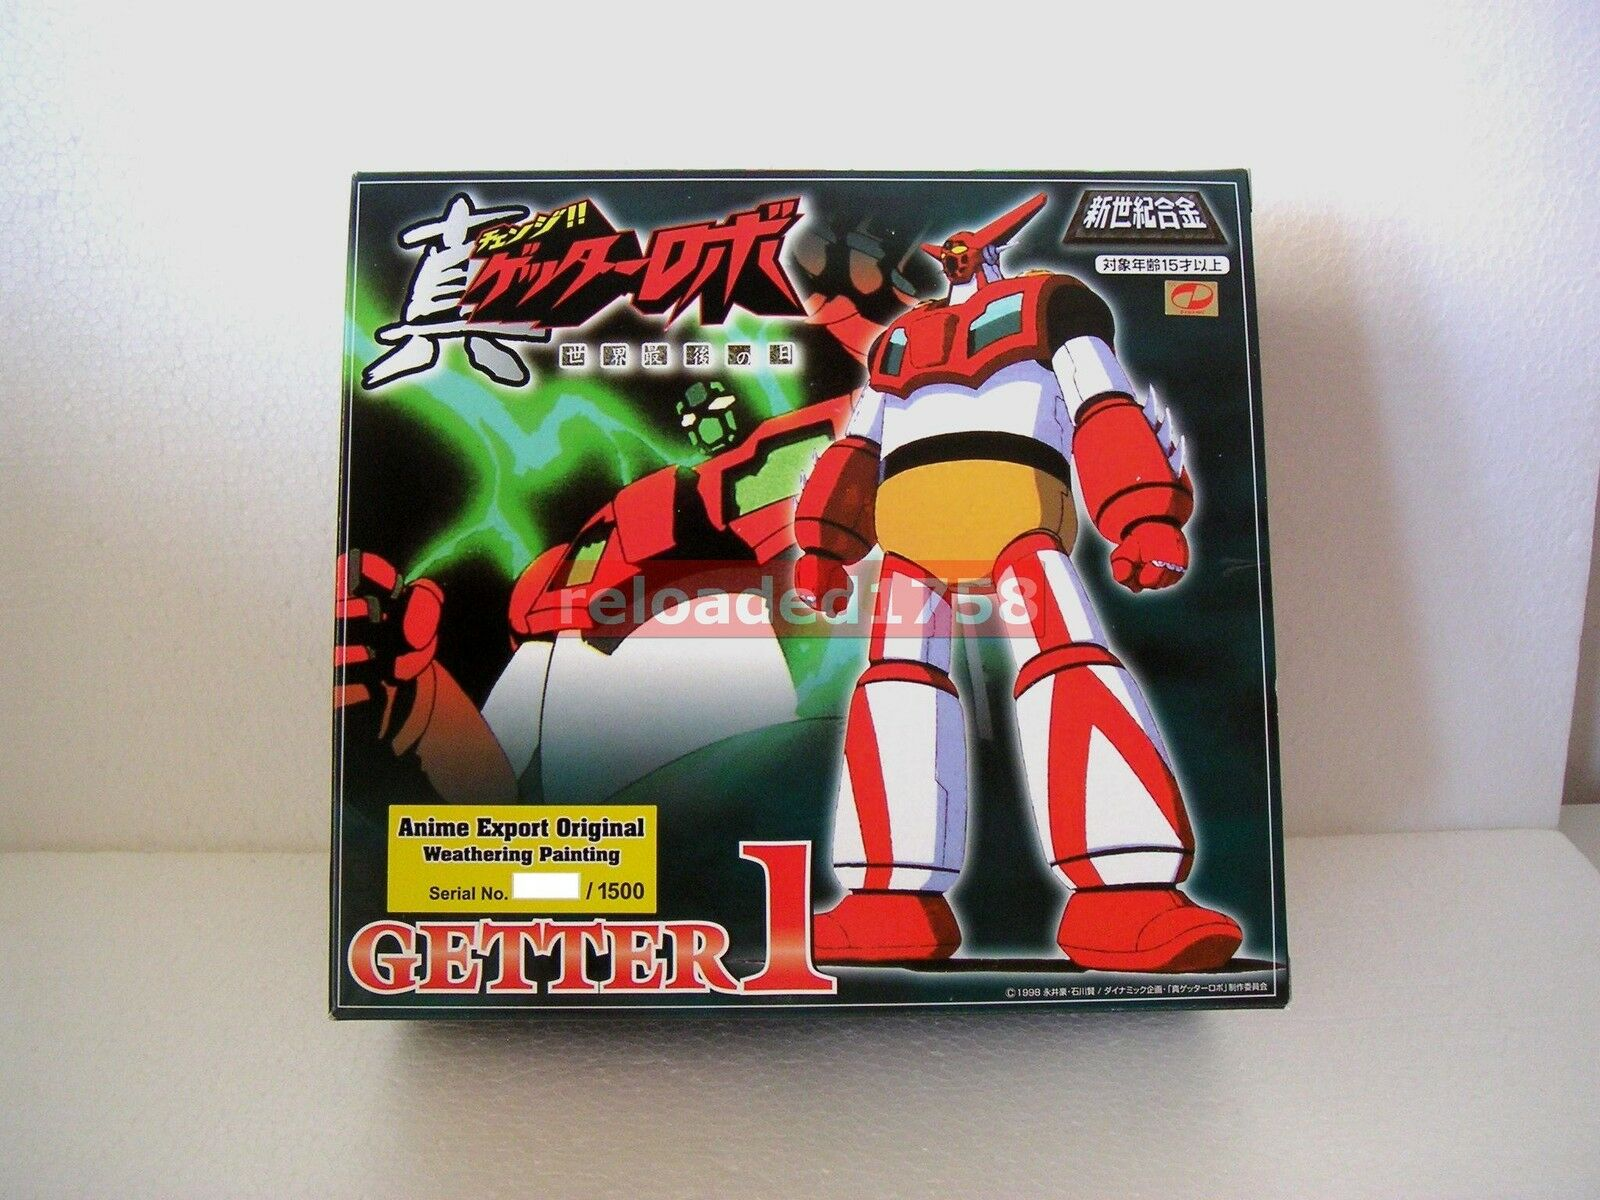 AOSHIMA SG-13 GETTER 1 CHOGOKIN ANIME EXPORT WEATHERING VER. LIMITED 1500